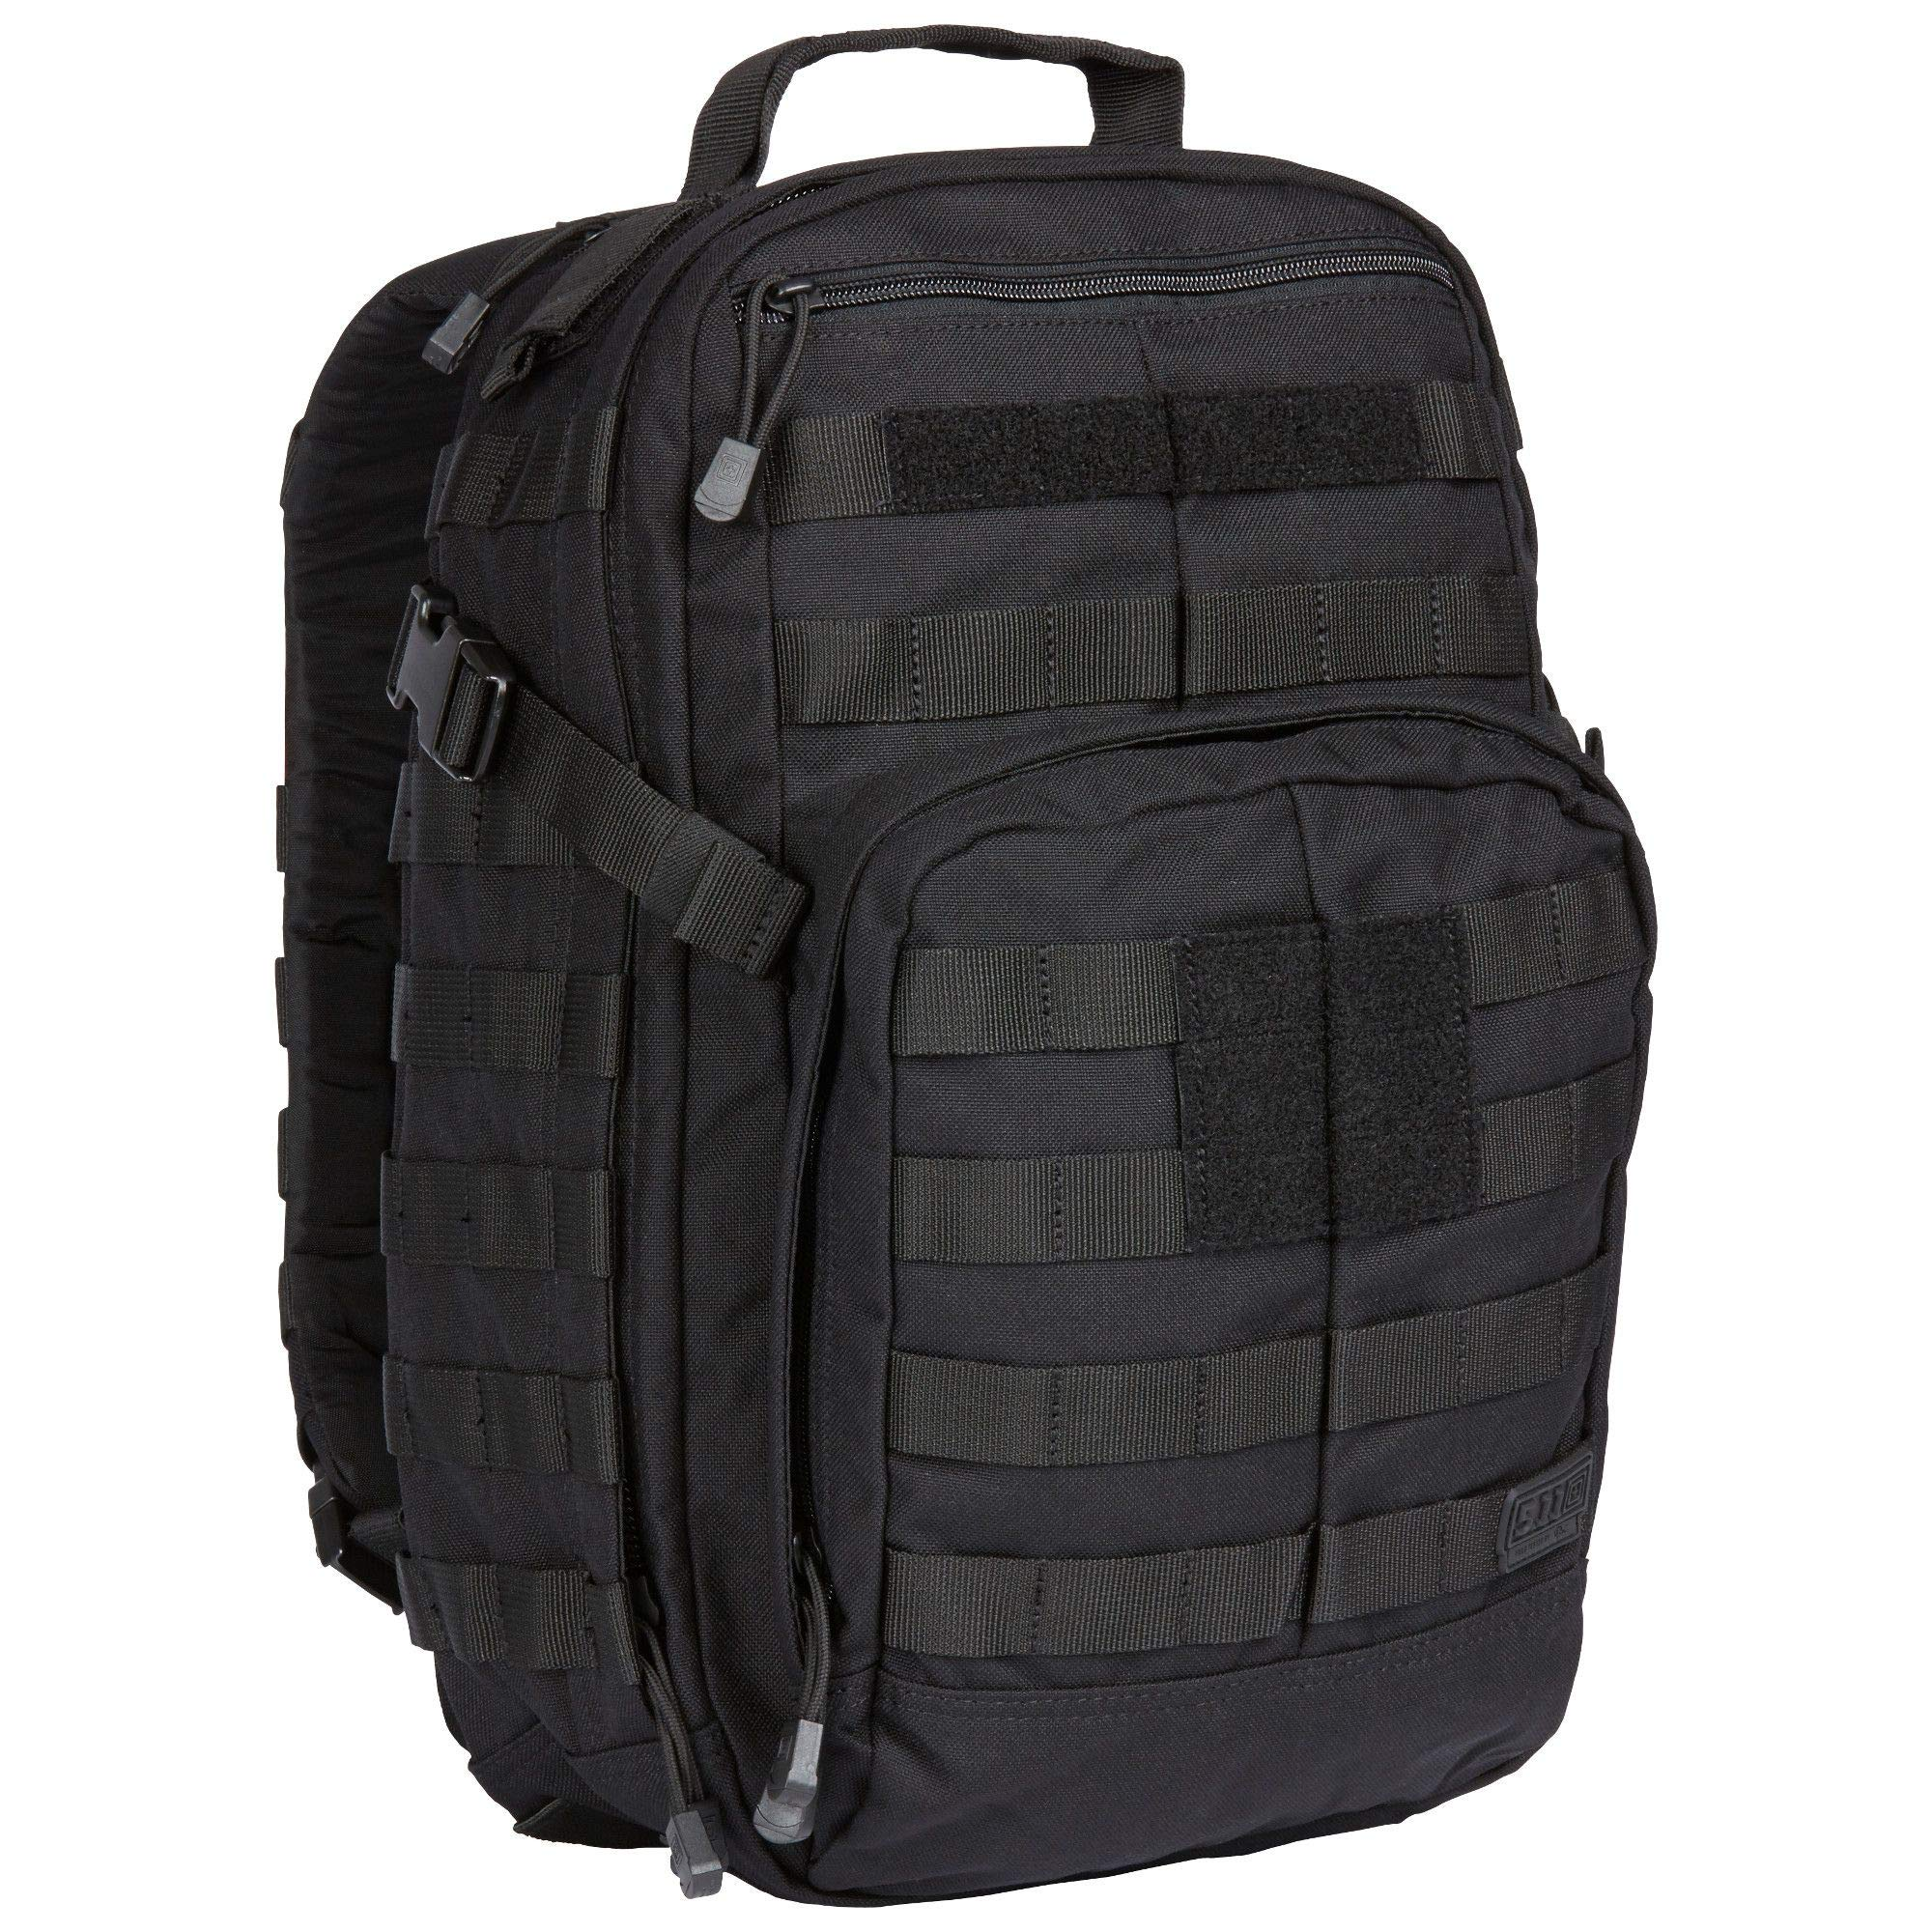 5.11 RUSH12 Tactical Military Assault Molle Backpack, Bug Out Rucksack Bag, Small, Style 56892, Black by 5.11 (Image #2)